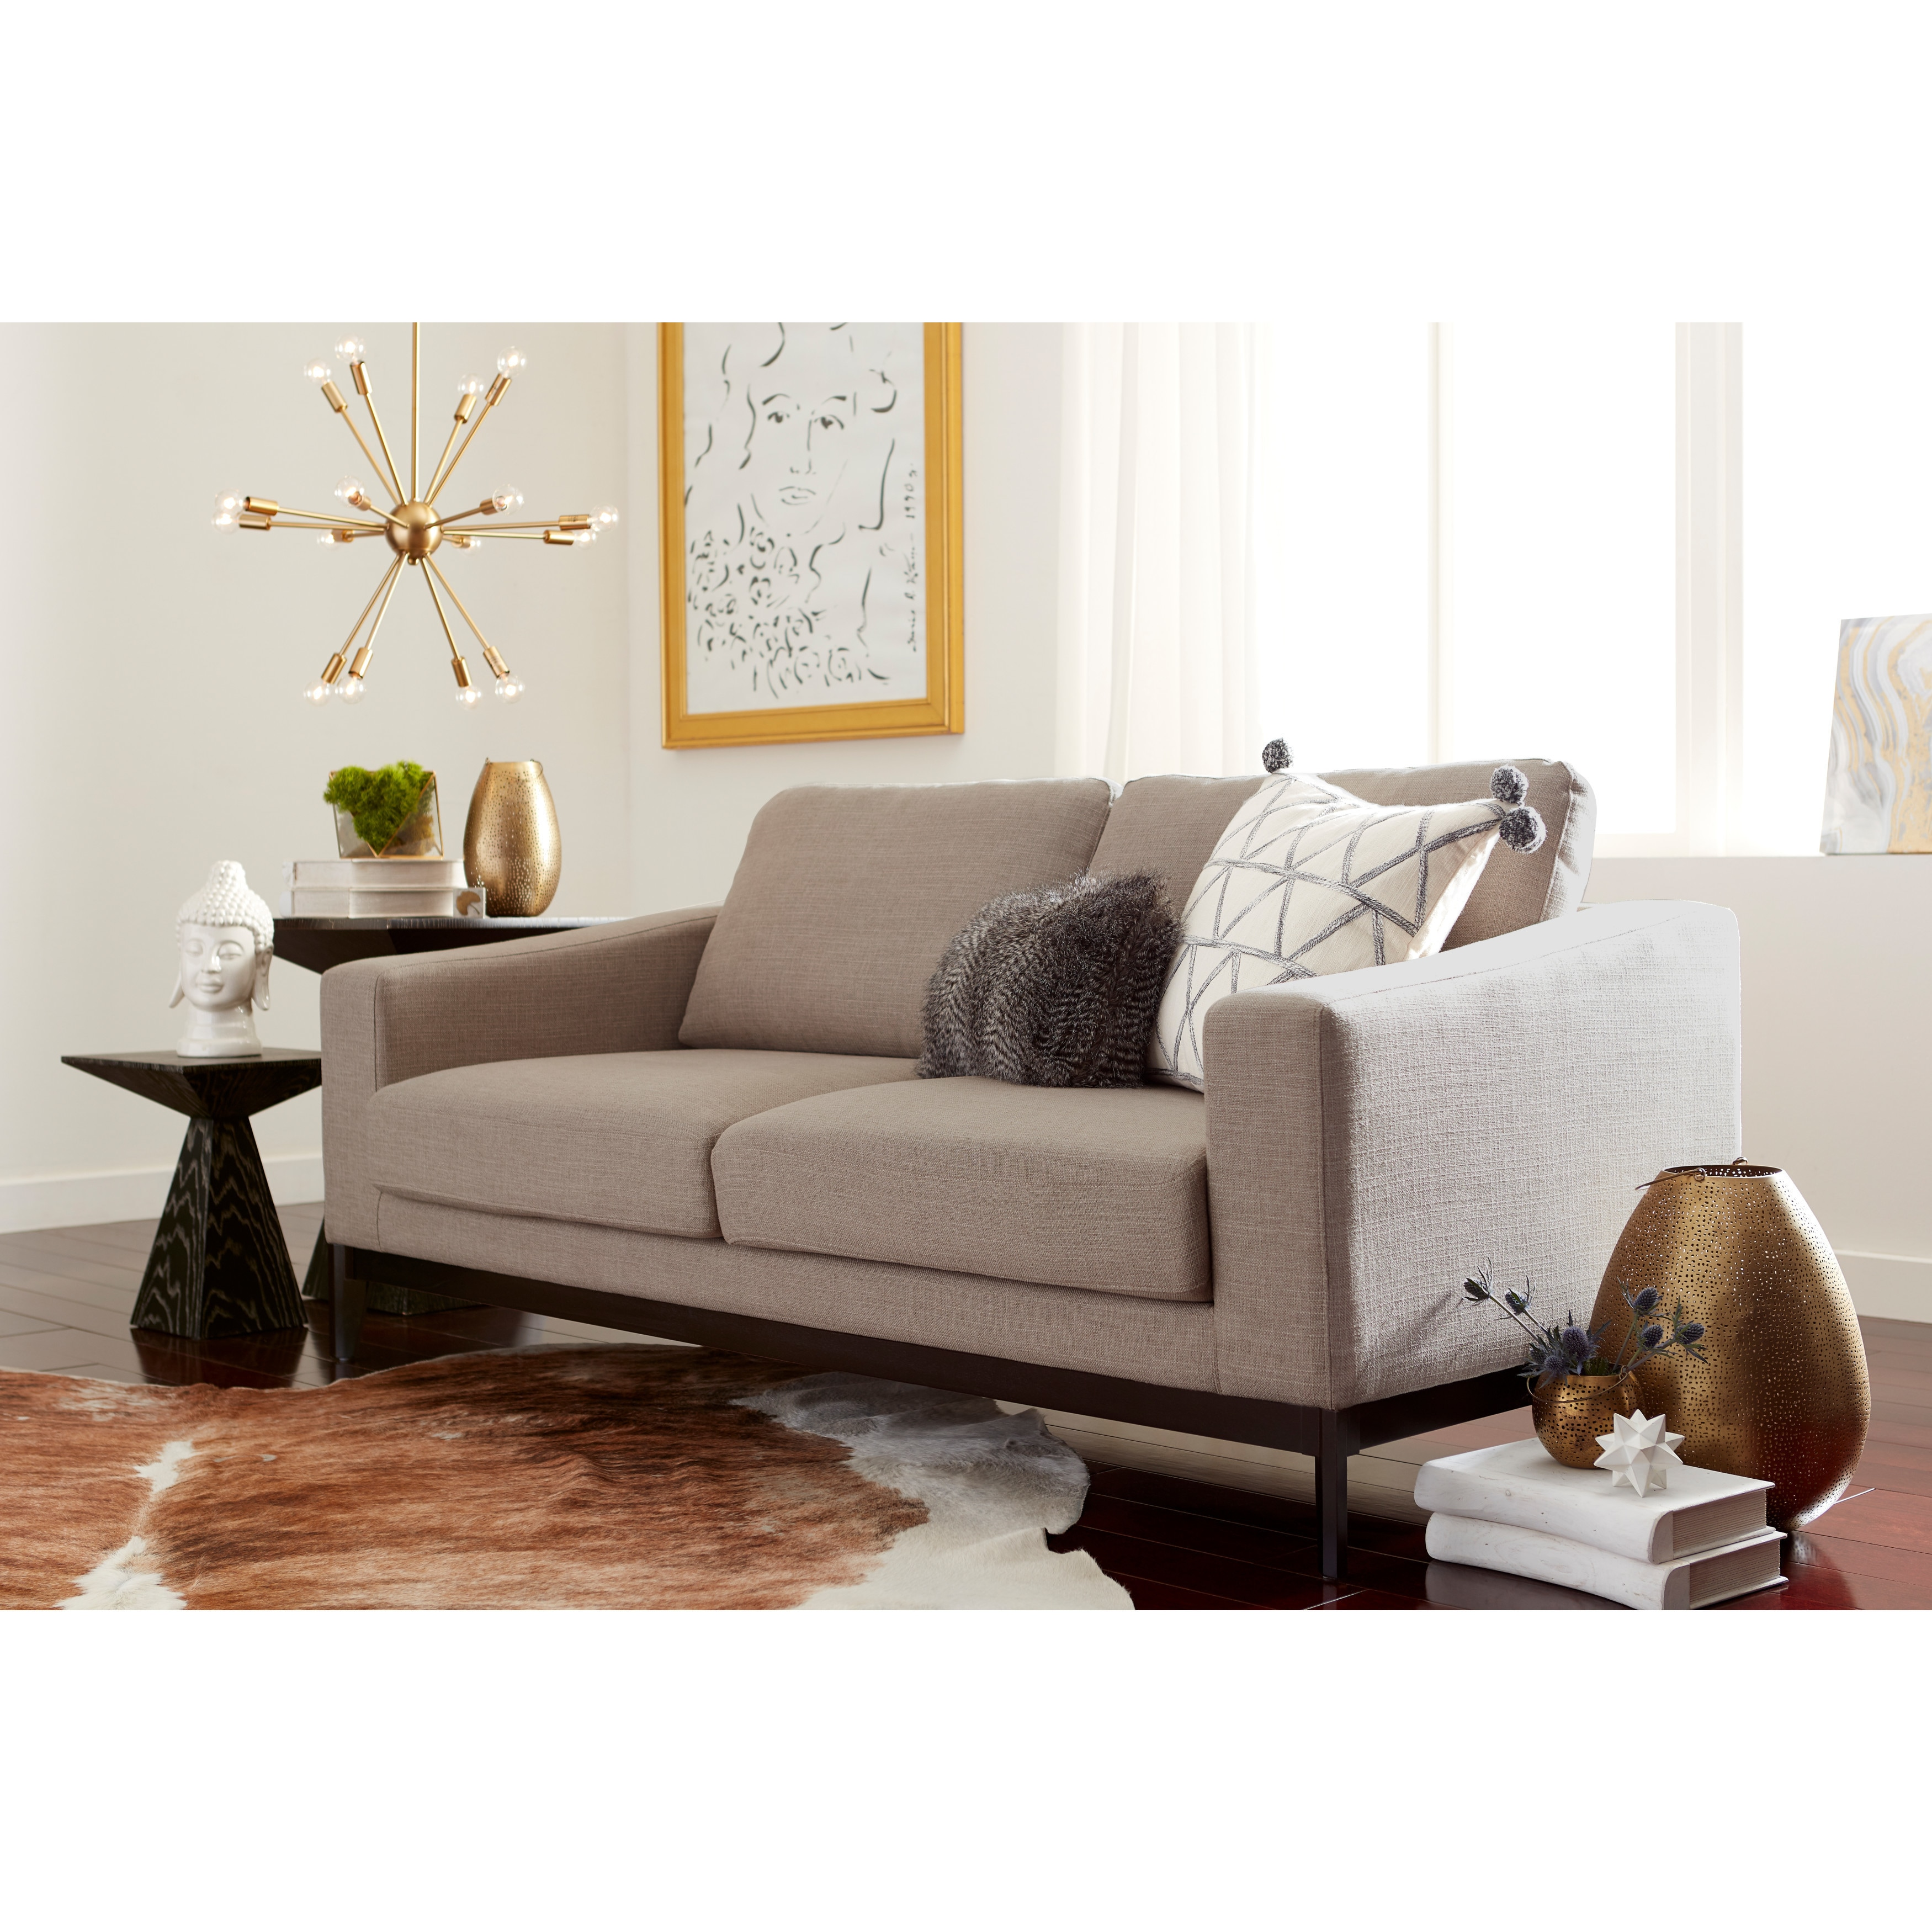 Beau Shop Elle Decor Olivia French Linen Sofa   Free Shipping Today    Overstock.com   18228016